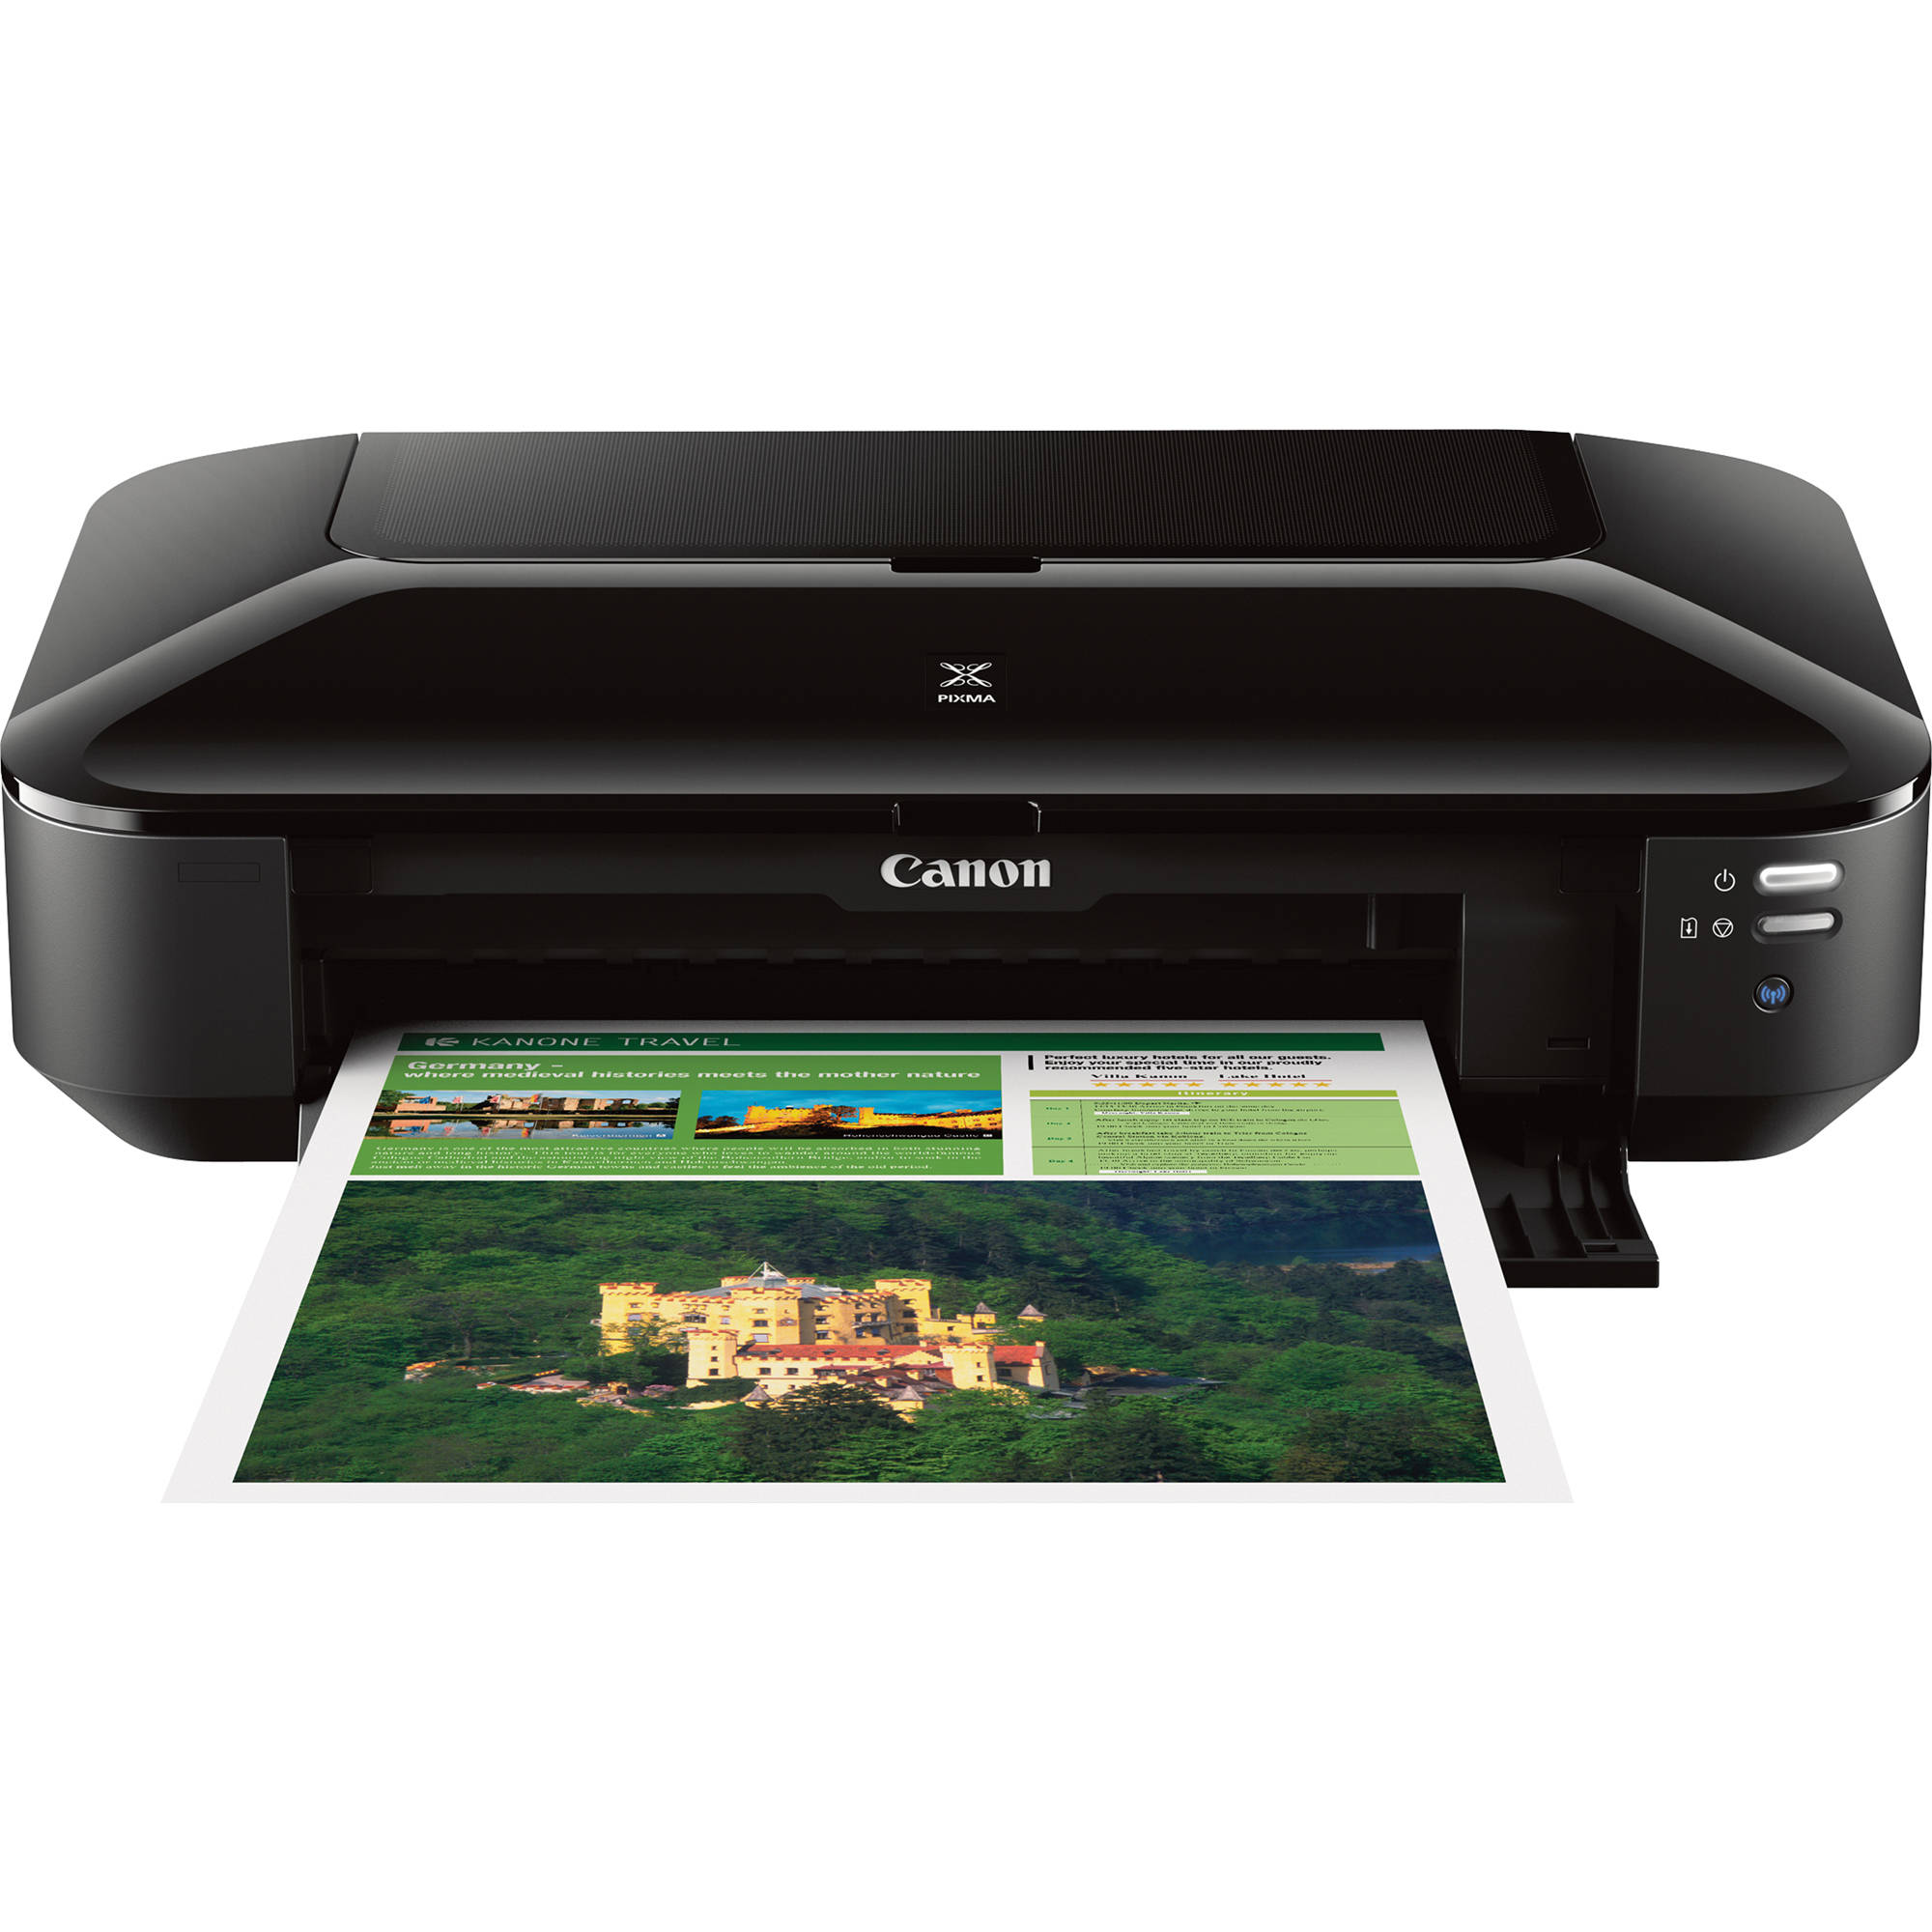 canon pixma ix6820 wireless inkjet printer 8747b002 b h photo